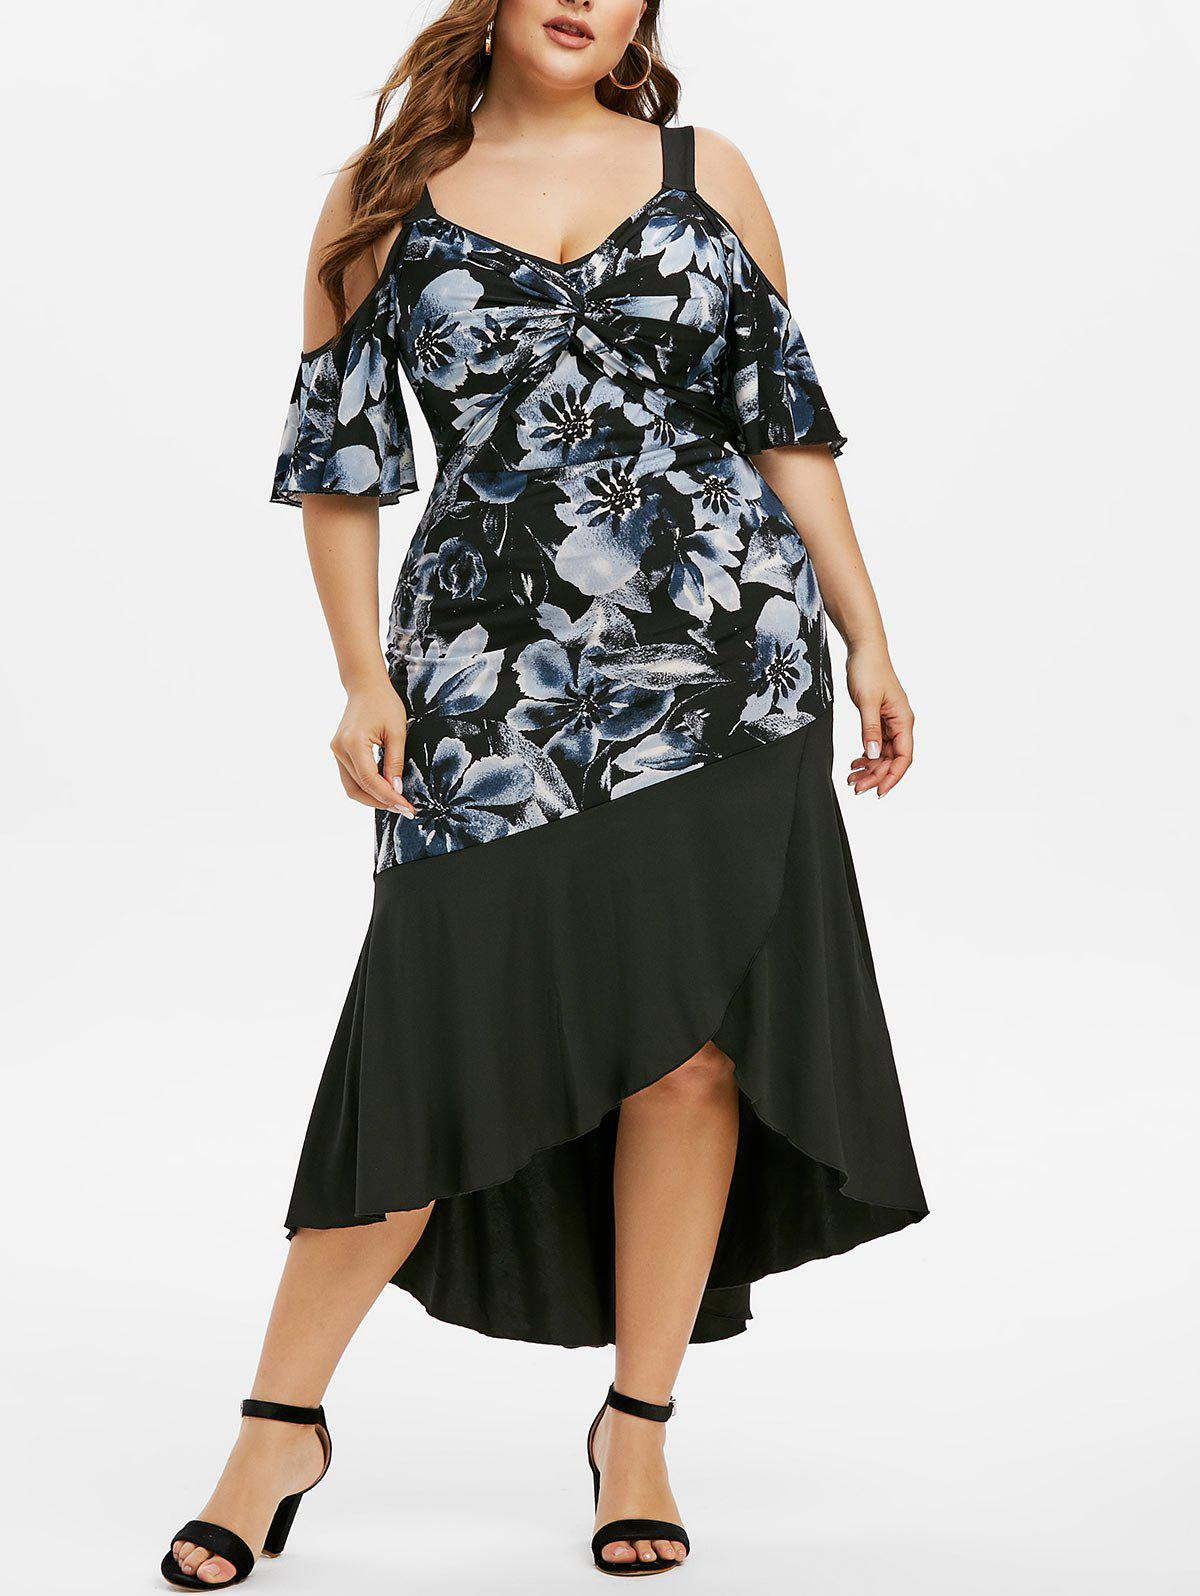 Plus Size Floral Print Cold Shoulder Twist Dress - BLACK 5X